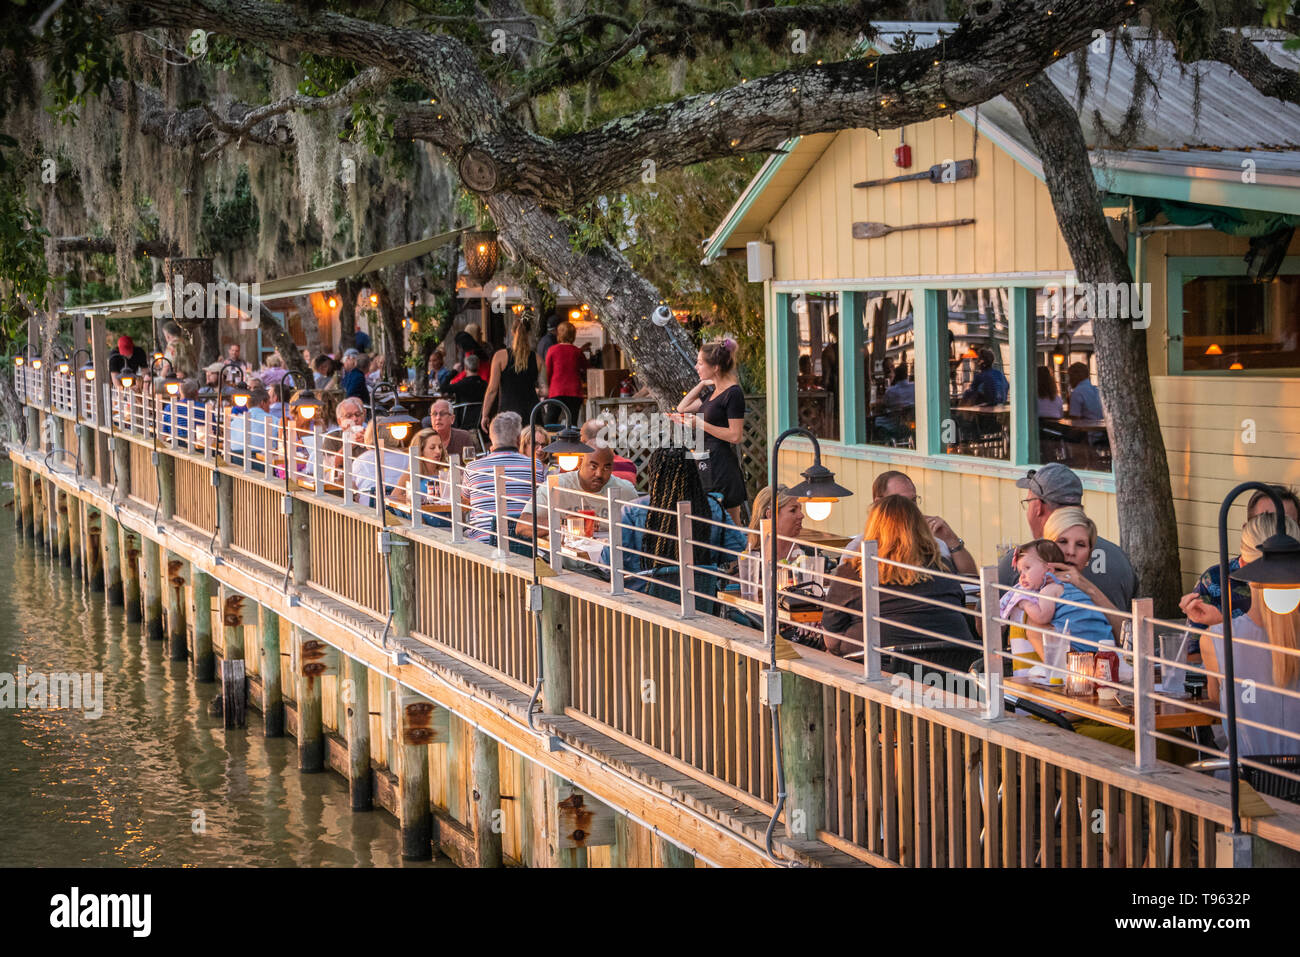 Waterfront sunset dining on the Intracoastal Waterway at Caps on the Water in St. Augustine, Florida. (USA) - Stock Image